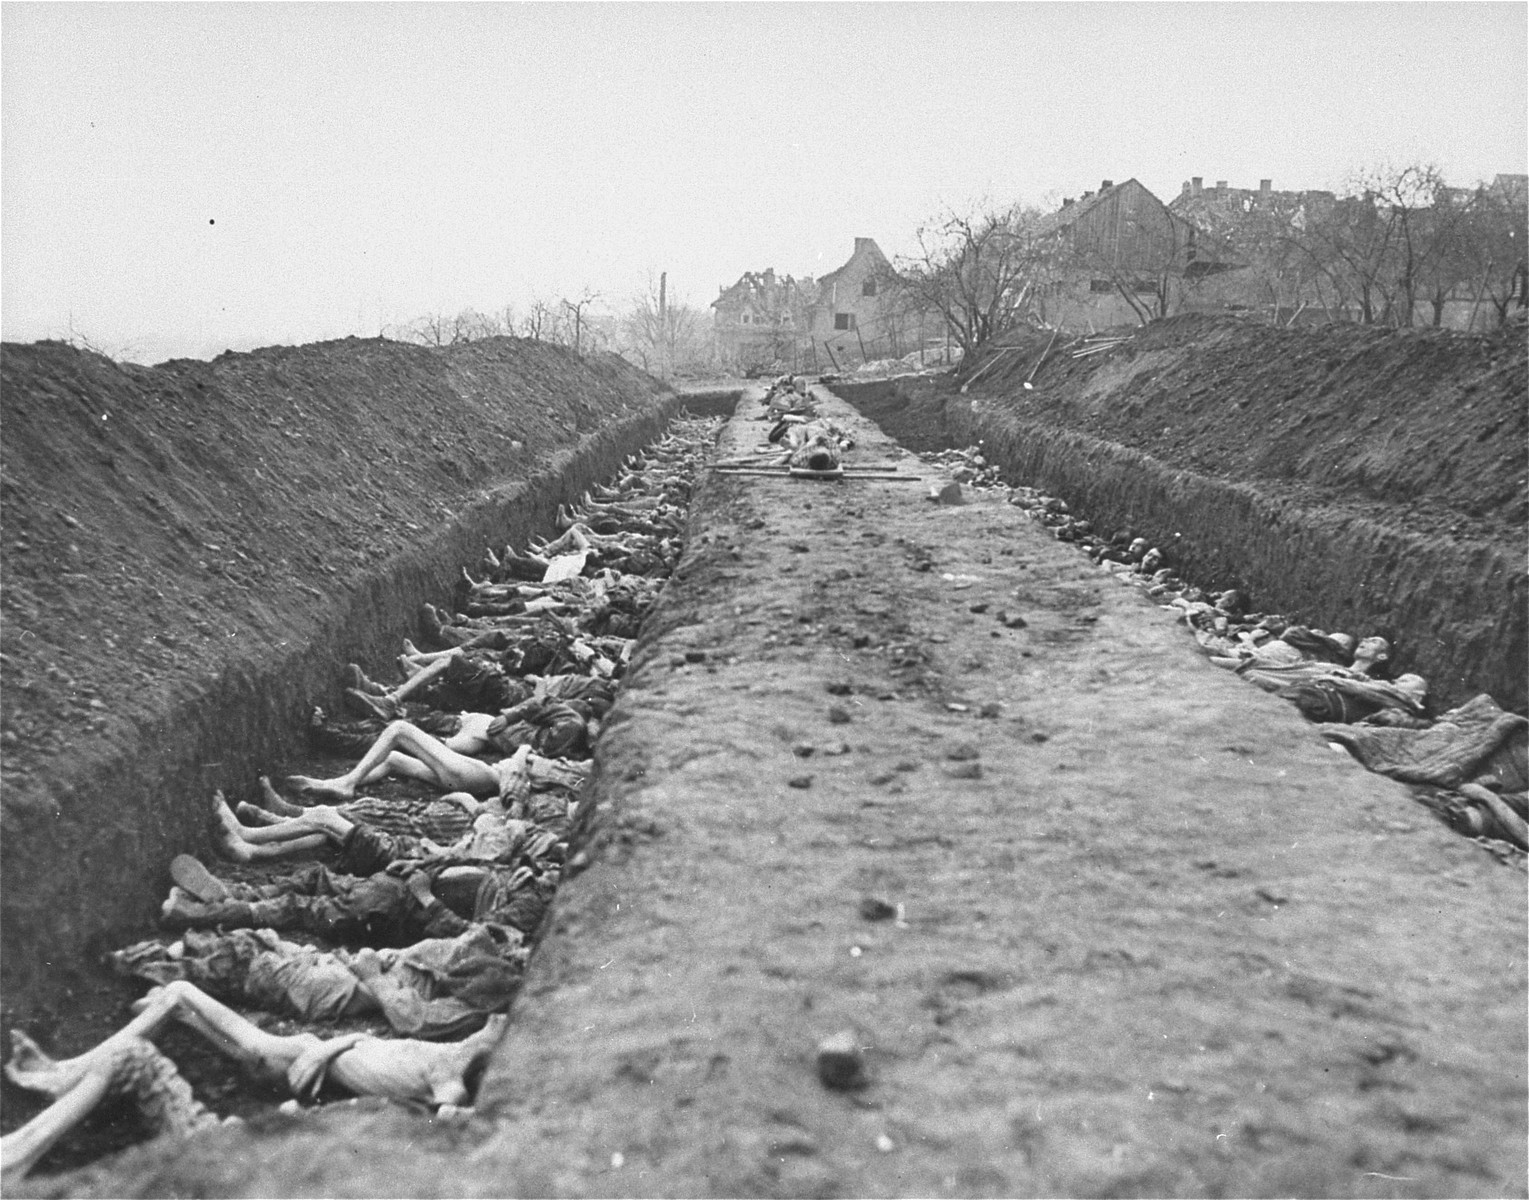 "The bodies of prisoners killed in the Nordhausen concentration camp lie in mass graves dug by German civilians under orders from American troops.  The original Signal Corps caption reads, ""U.S. TROOPS OVERRUN NAZI SLAUGHTER HOUSE.  The bodies of hundreds of former slave workers of the Nazis were discovered by soldiers of the Third Armored and 104th Infantry Divisions First U.S. Army, in ""Lager-Nordhausen,"" Nazi concentration camp in Nordhausen, Germany, which usually contained between 3,000 and 4,000 prisoners. The dead lay beside the sick and dying and the Nazi camp masters made no attempt to check the contagious diseases and gangrene suffered by maltreated prisoners of many nationalities.  The bodies, which were no more than skeletons, were buried by German civilians who were also forced to dig mass graves.  The few prisoners still alive, who had been beaten, maltreated in other ways and starved by the Nazis, have been removed to allied hospitals.  Troops of the First U.S. Army entered Nordhausen April 10, 1945.  The Reich city, 120 miles southwest of Berlin, was a manufacturing center for Nazi V-weapons.  BIPPA                                                         EA 52449  THIS PHOTO SHOWS:  Bodies on stretchers line a strip between the mass graves which are filled with the skeleton-like corpses of the former slaves to the Nazi  war machine.  The victims await burial by German civilians.  U.S. Signal Corps Photo ETO-HQ-45-32214.   SERVICED BY LONDON OWI TO LIST B CERTIFIED AS PASSED BY SHAEF CENSOR"